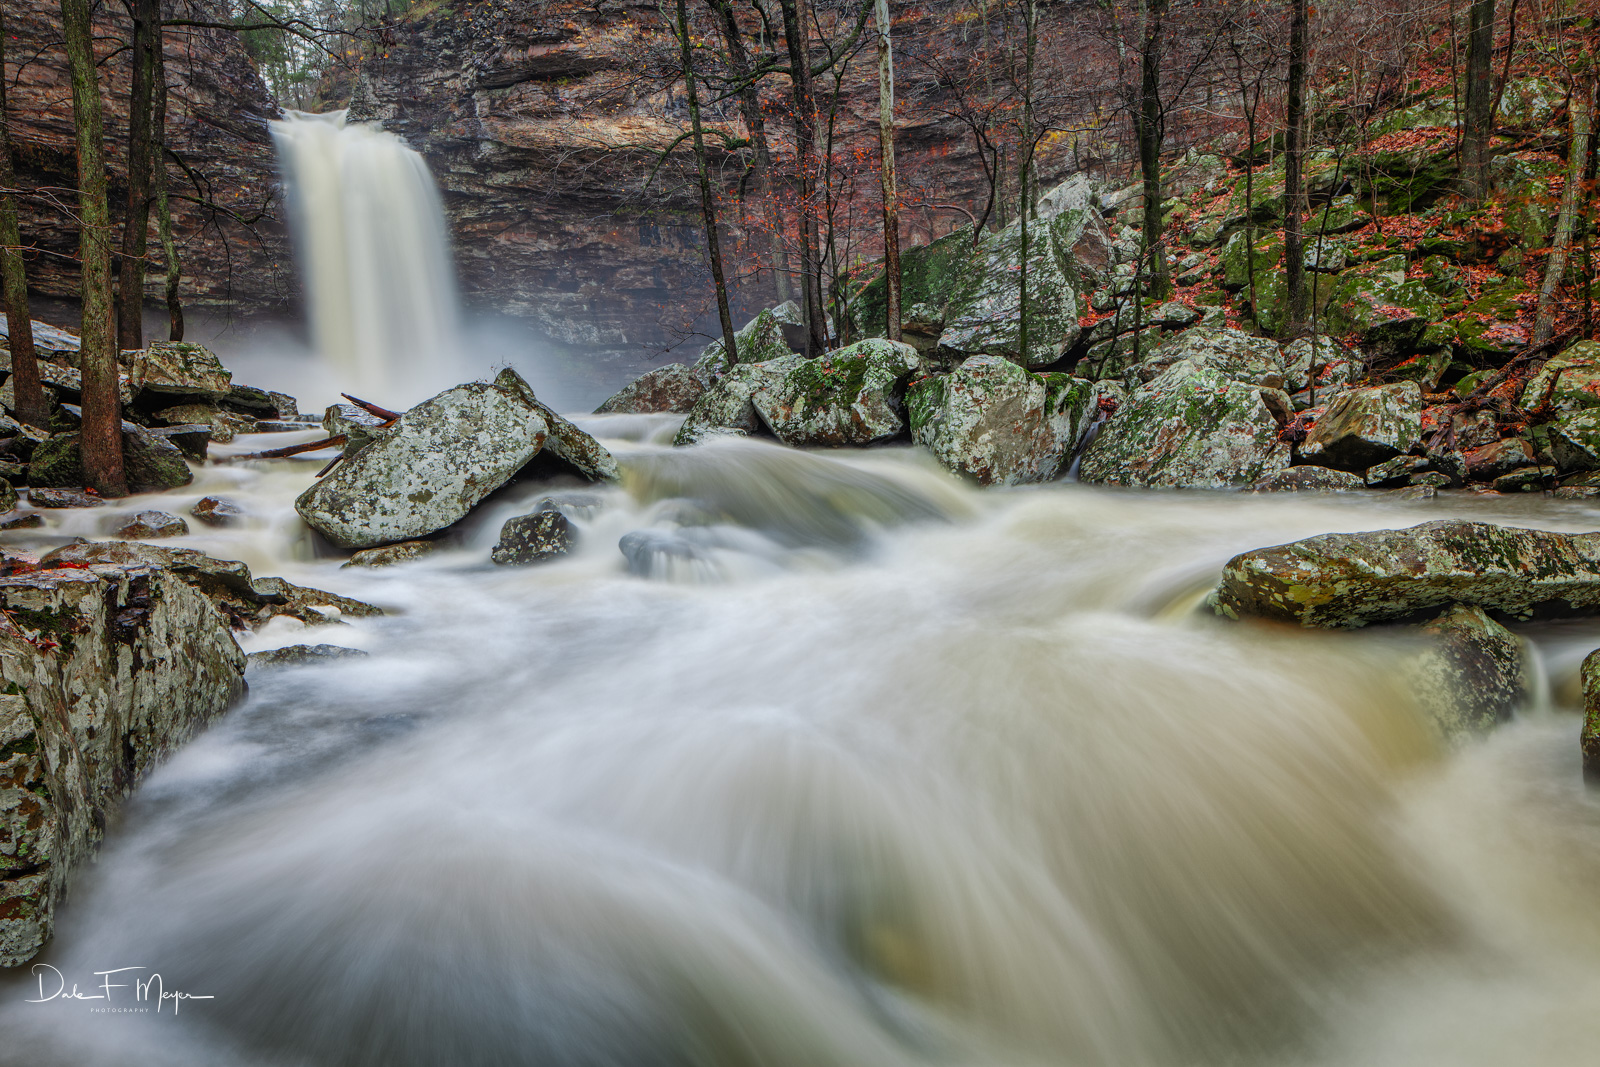 Cedar Creek,cedar falls,high water,late fall,petit jean,rivers streams and waterfalls gallery, rocks,water fall, photo